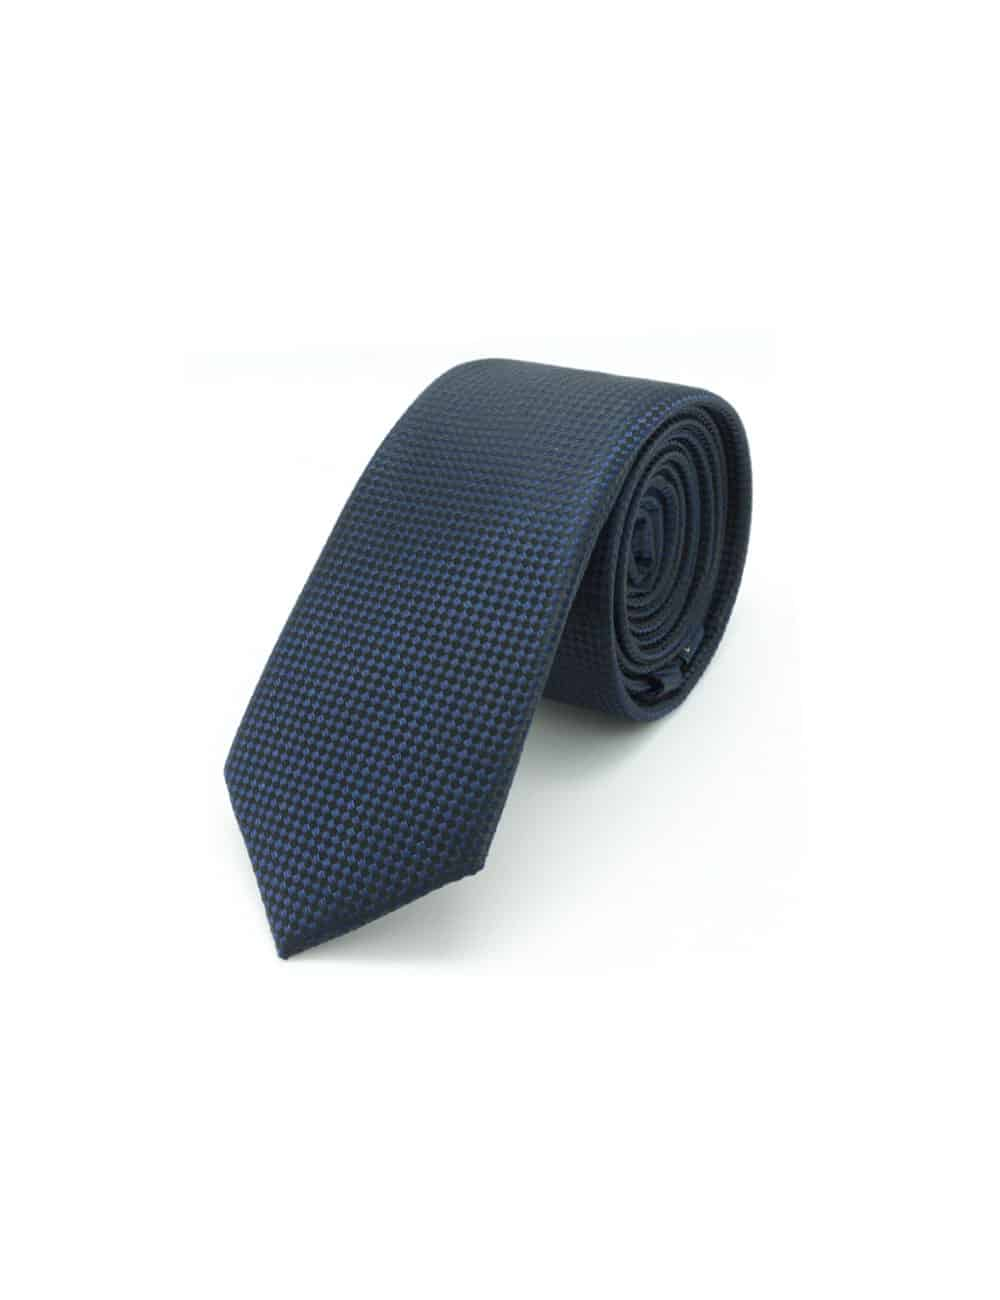 Navy and Black Mini Checks Spill Resist Woven Necktie NT39.9